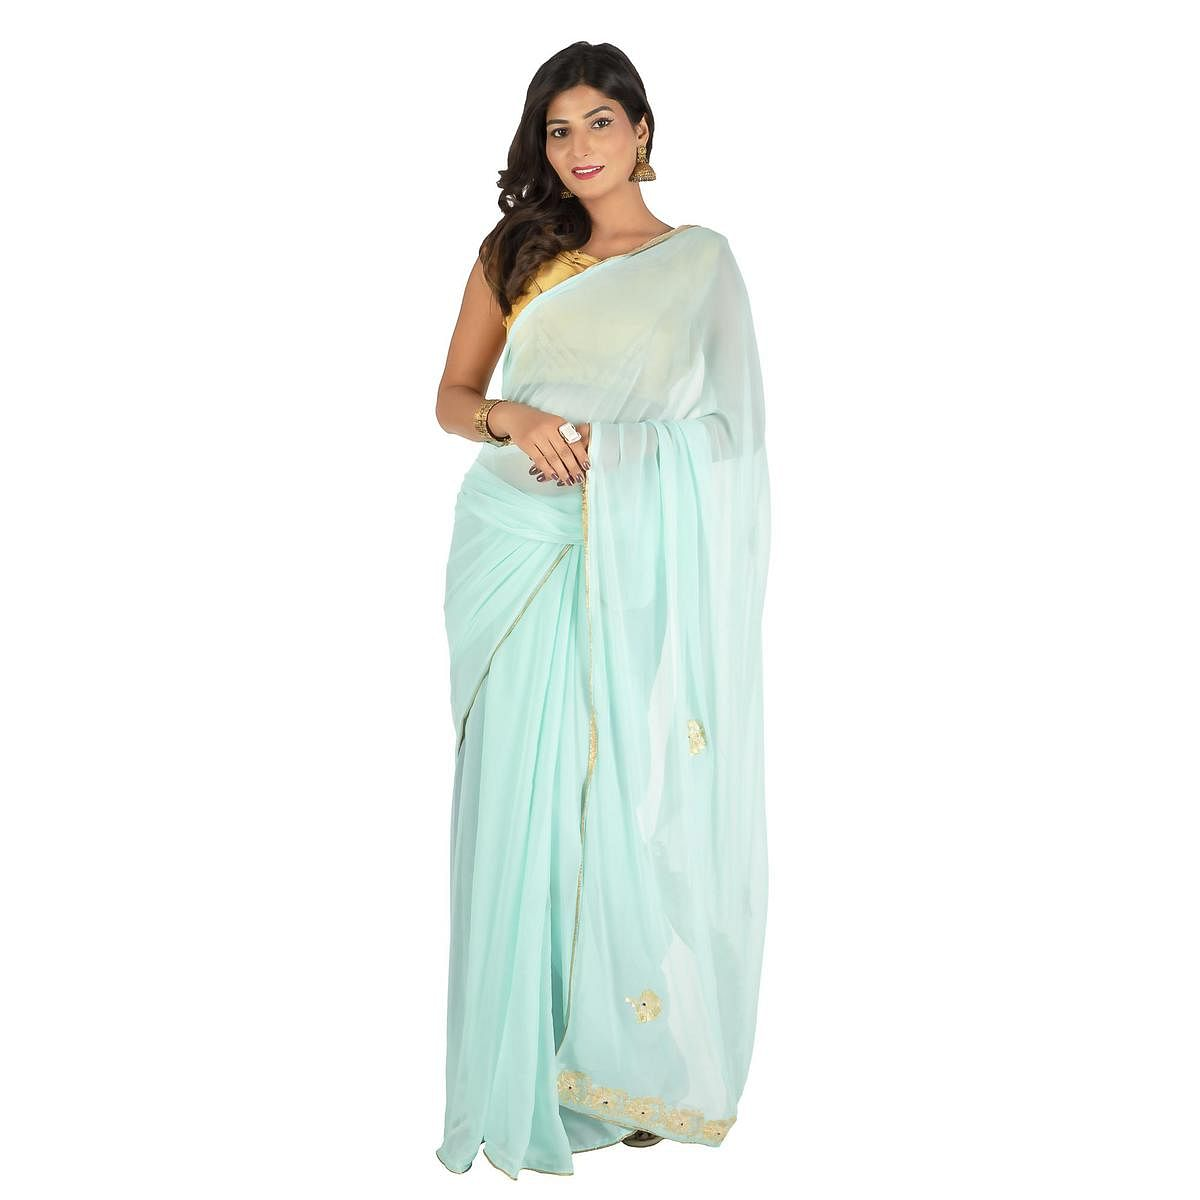 Pooja Fashion - Turquoise Blue Colored Party Wear Embroidered Chiffon Saree